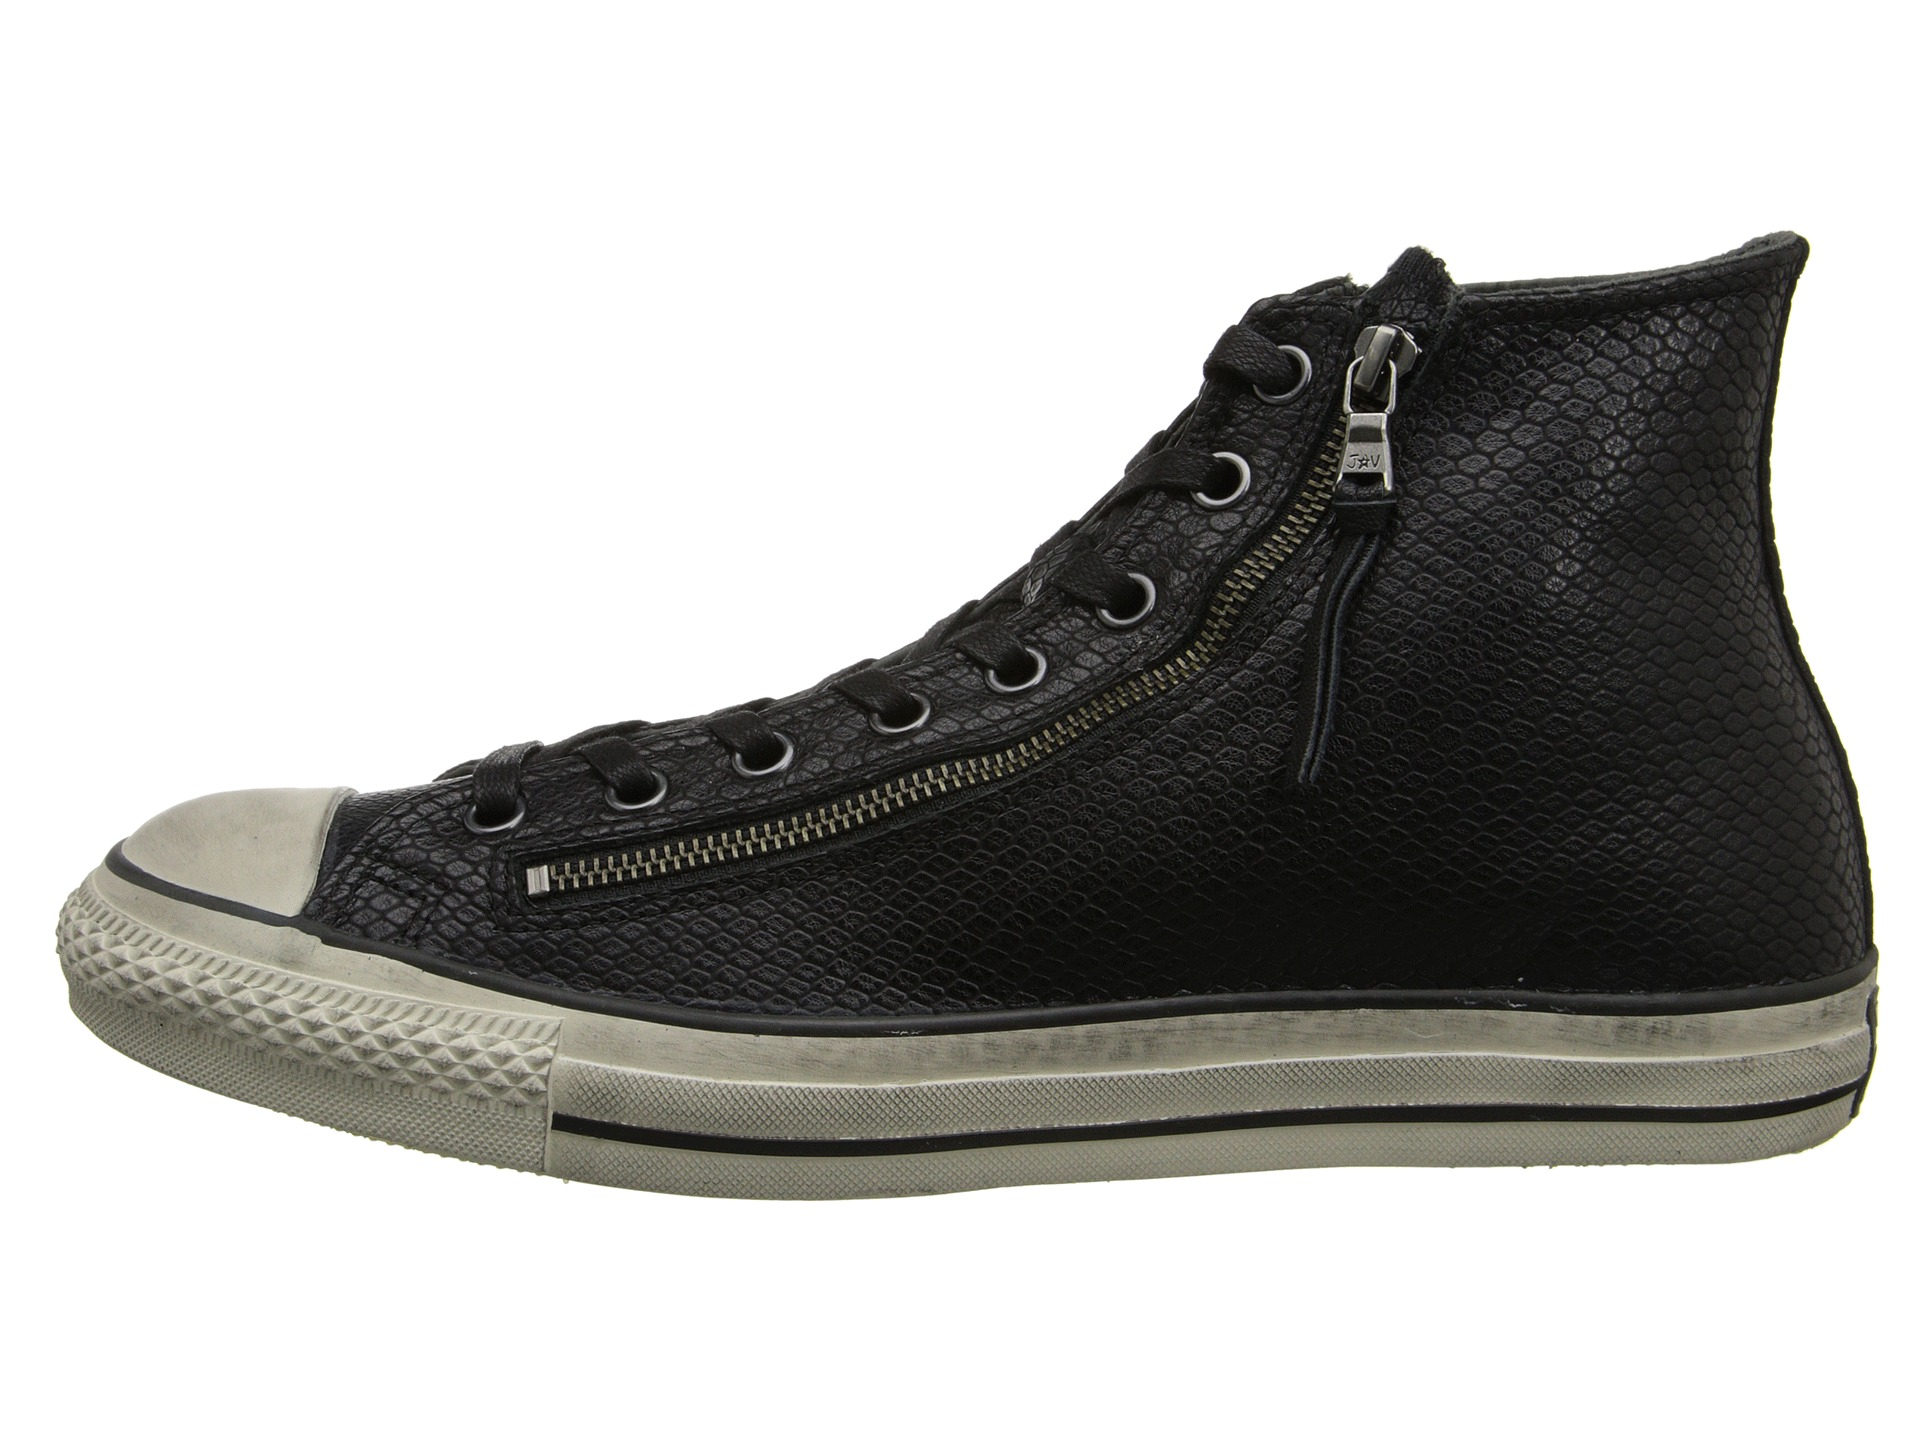 14fb01c1e681 ... new arrivals lyst converse chuck taylor all star leather double zip  black snake e92b6 29efe